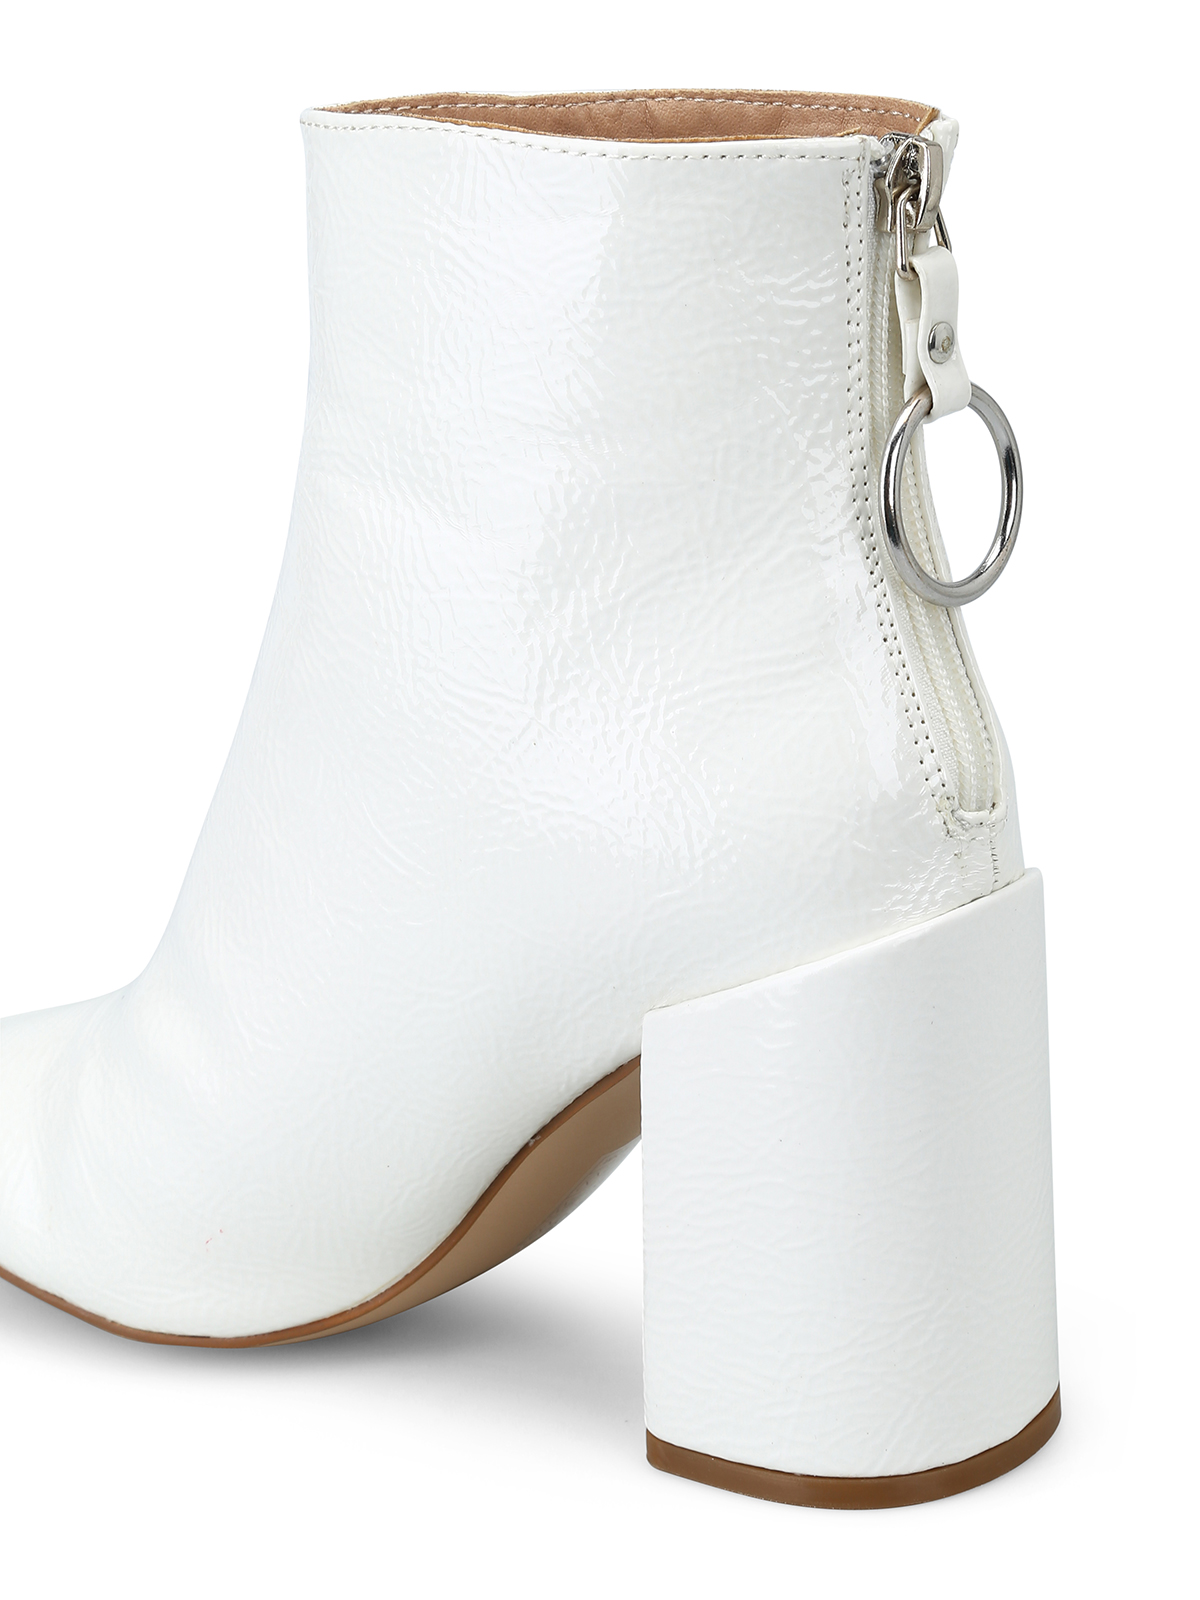 9c22988da96 Steve Madden - Posed white faux patent ankle boots - ankle boots ...